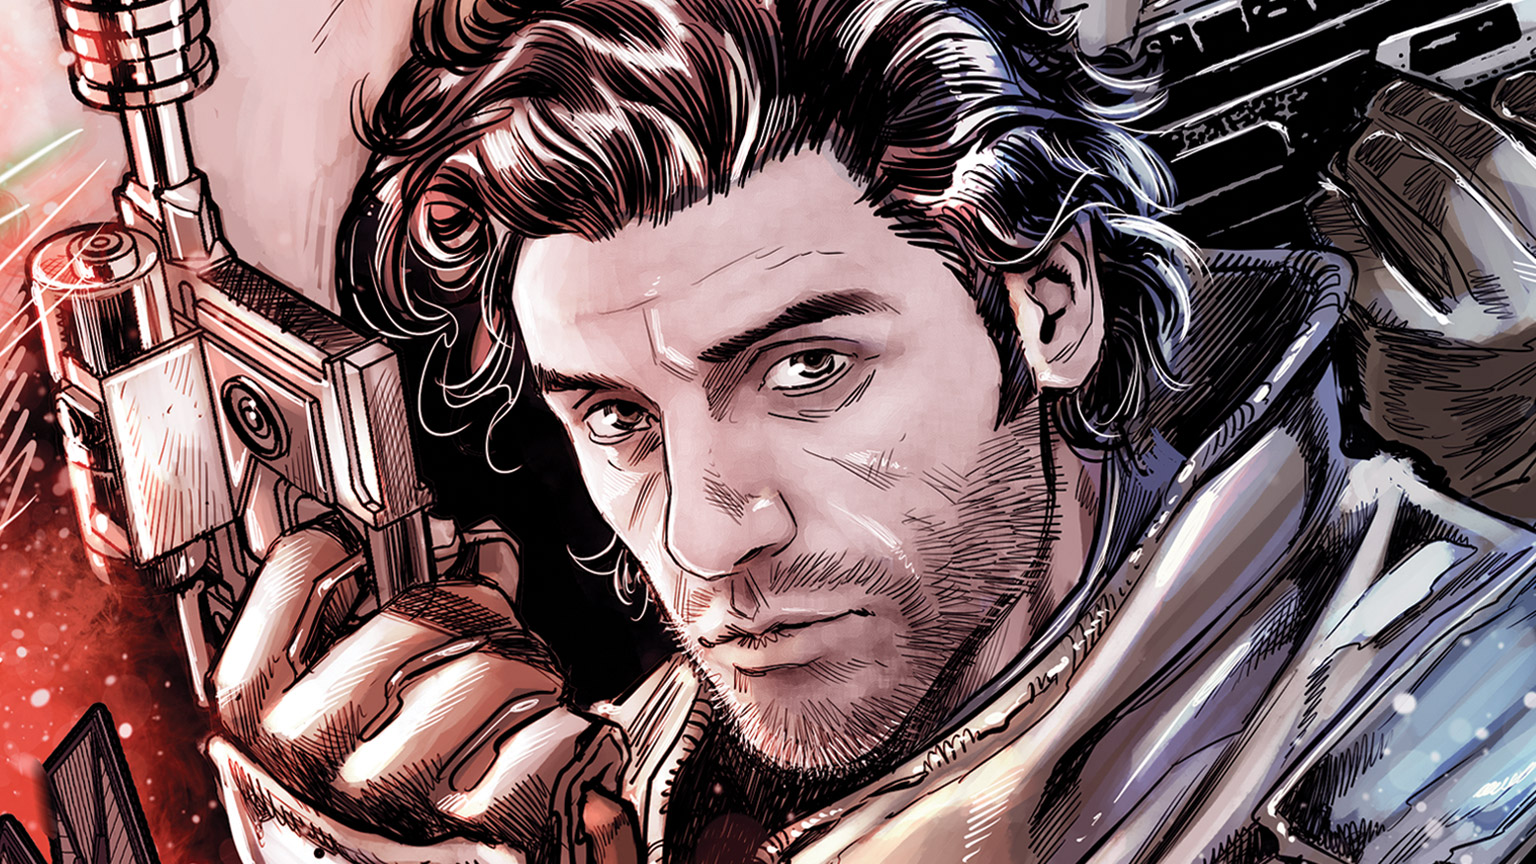 Poe Dameron on the cover of Allegiance #3.